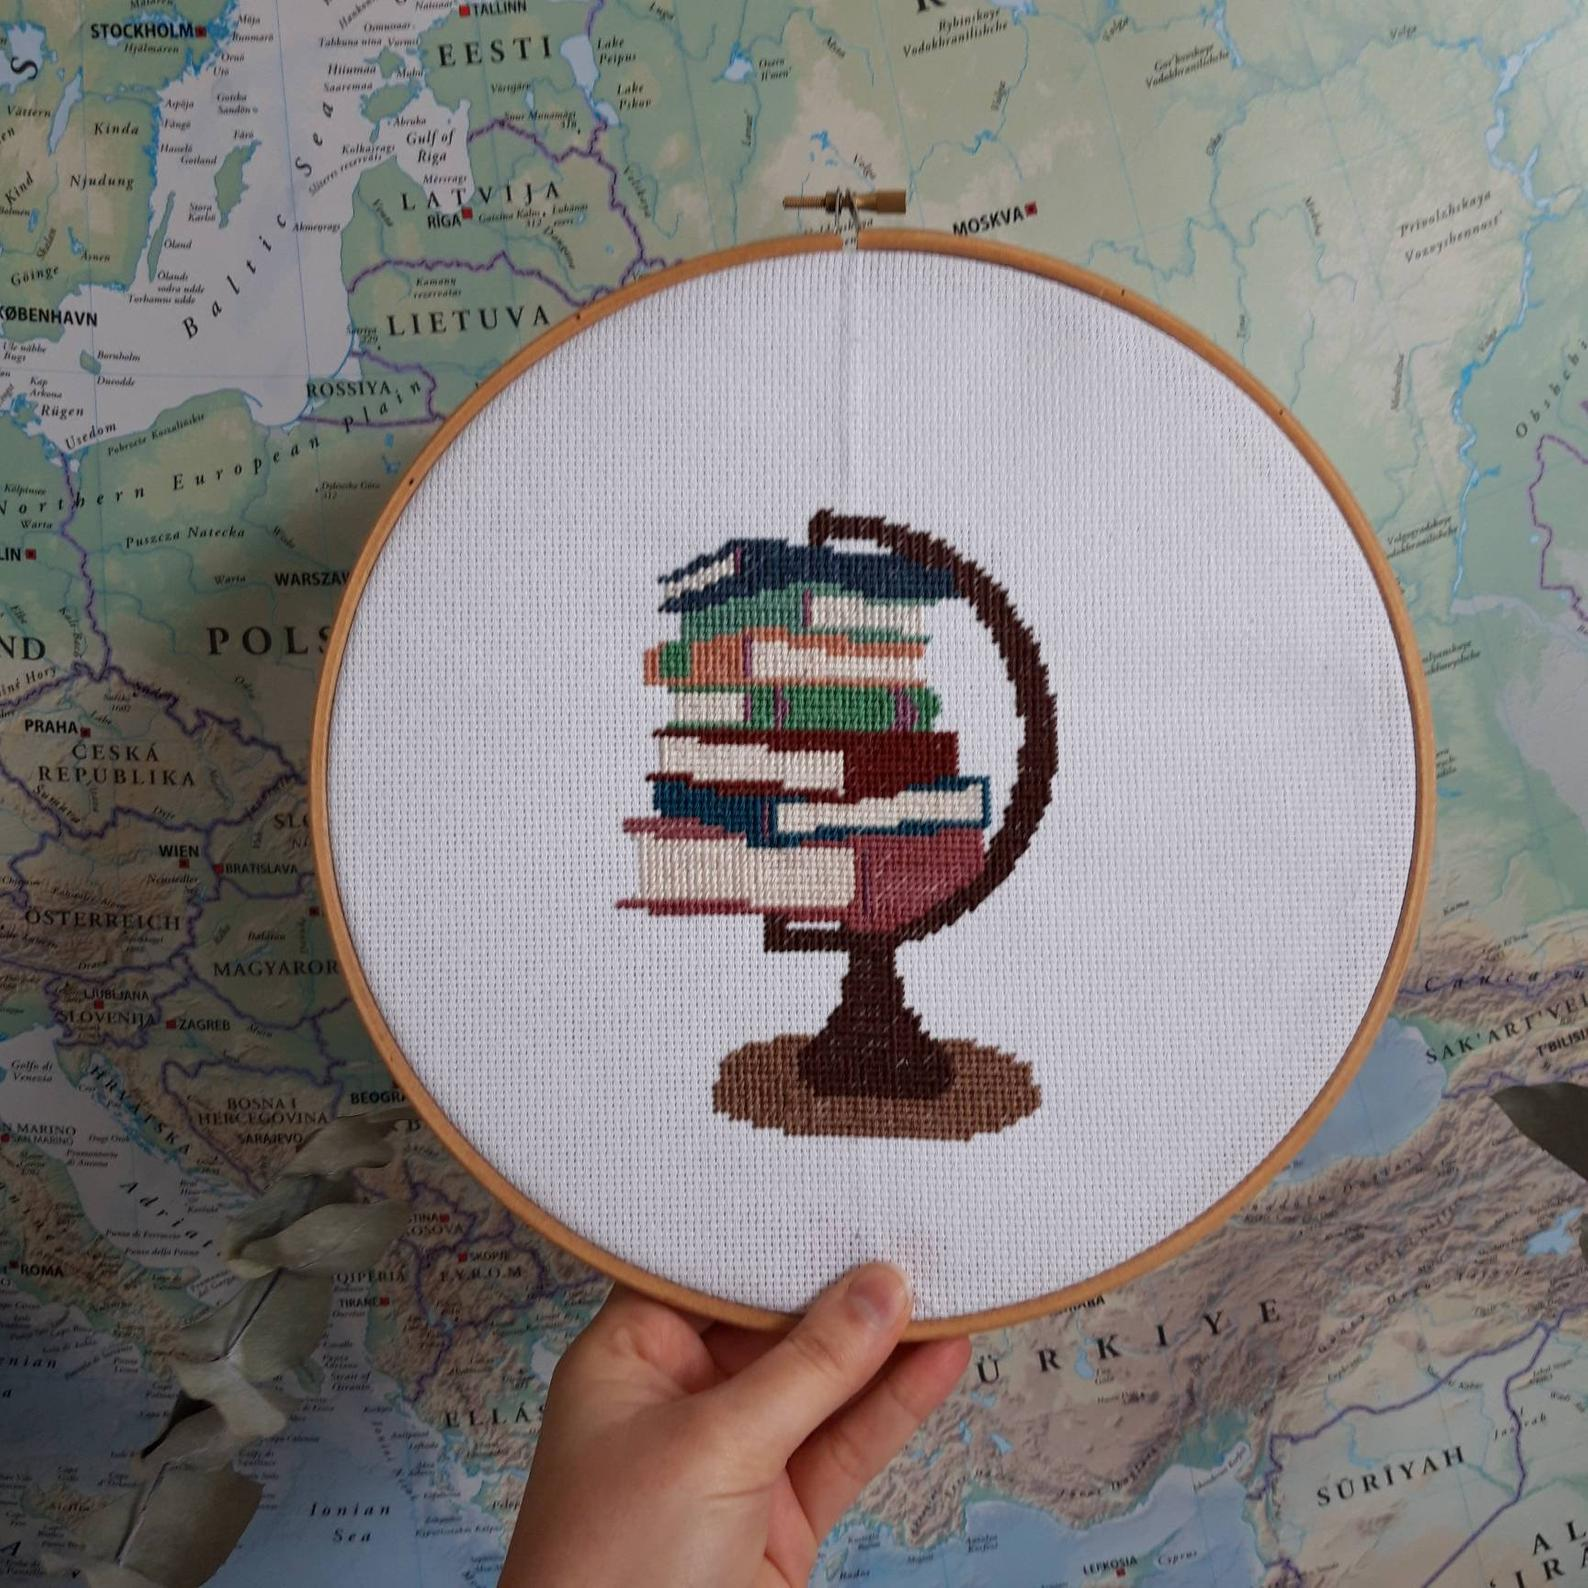 More Awesome Literary Embroidery, blog post by Aspasia S. Bissas, needlepoint, embroidery, cross-stitch, cross stitch, crossstitch, patterns, free patterns, books, reading, bookish, literary, aspasiasbissas.com, books are my world, etsy, pattern download